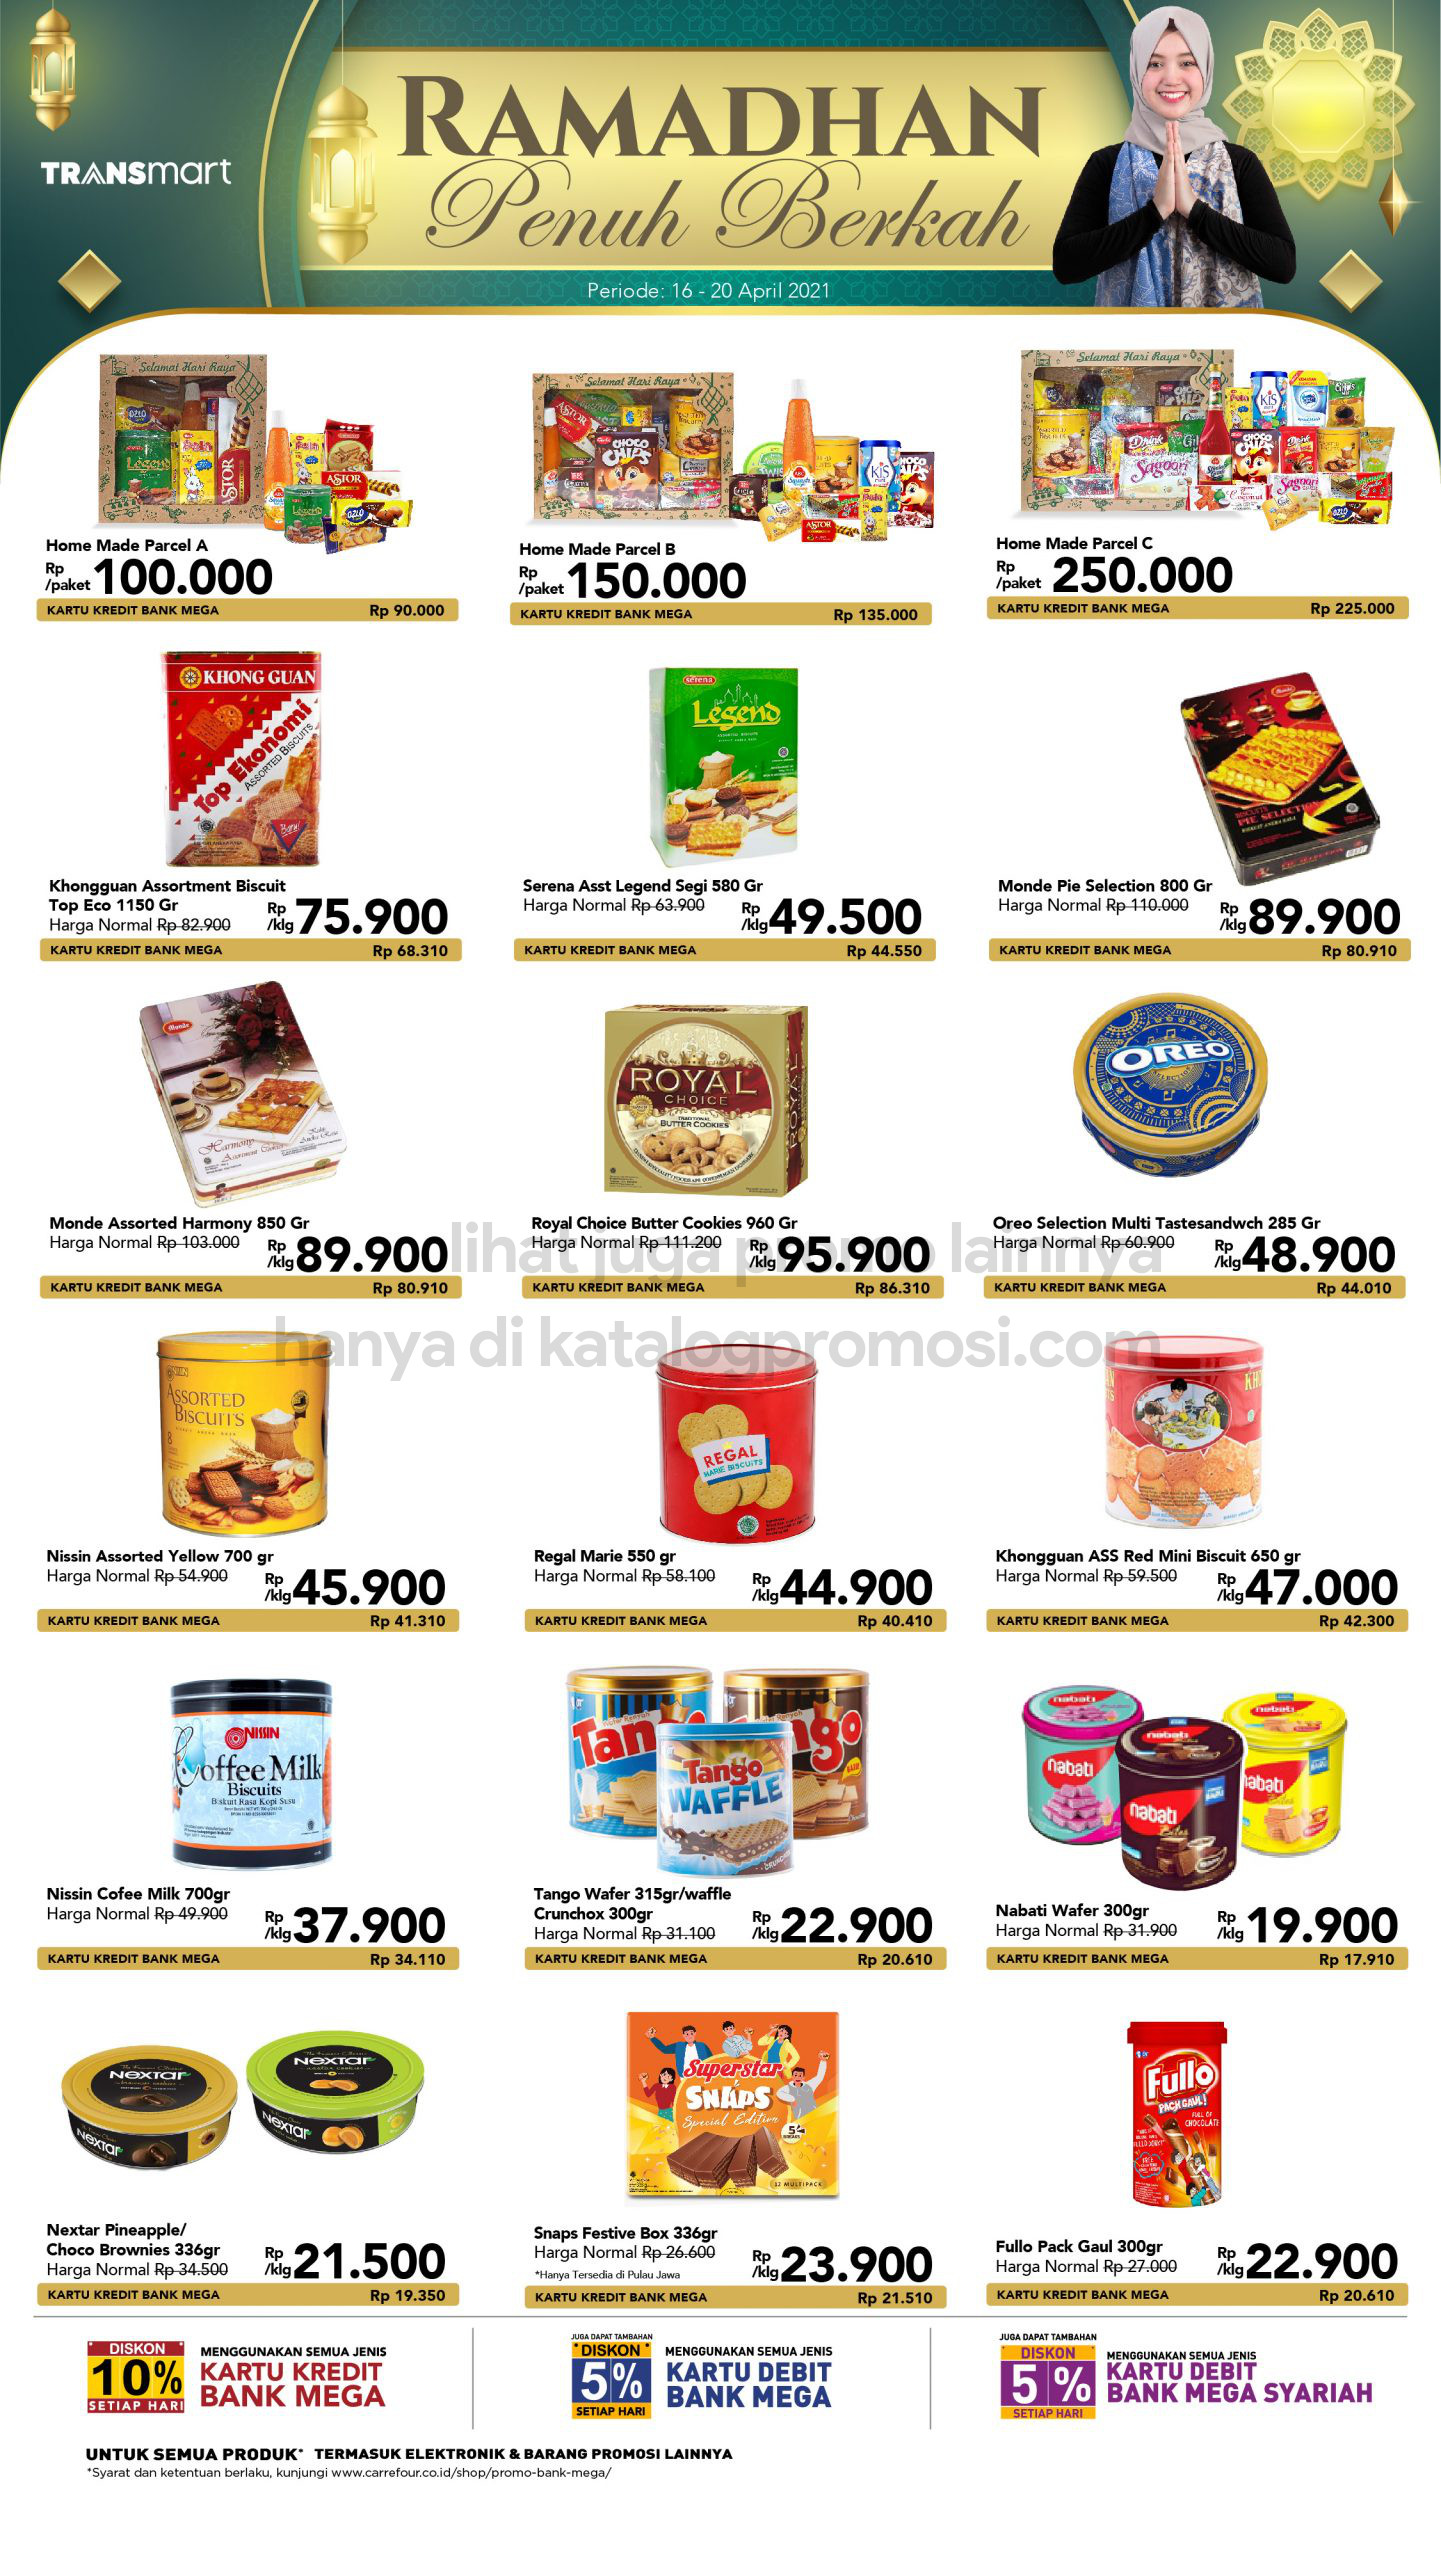 Promo TRANSMART CARREFOUR Katalog Weekend JSM periode 16-20 April 2021